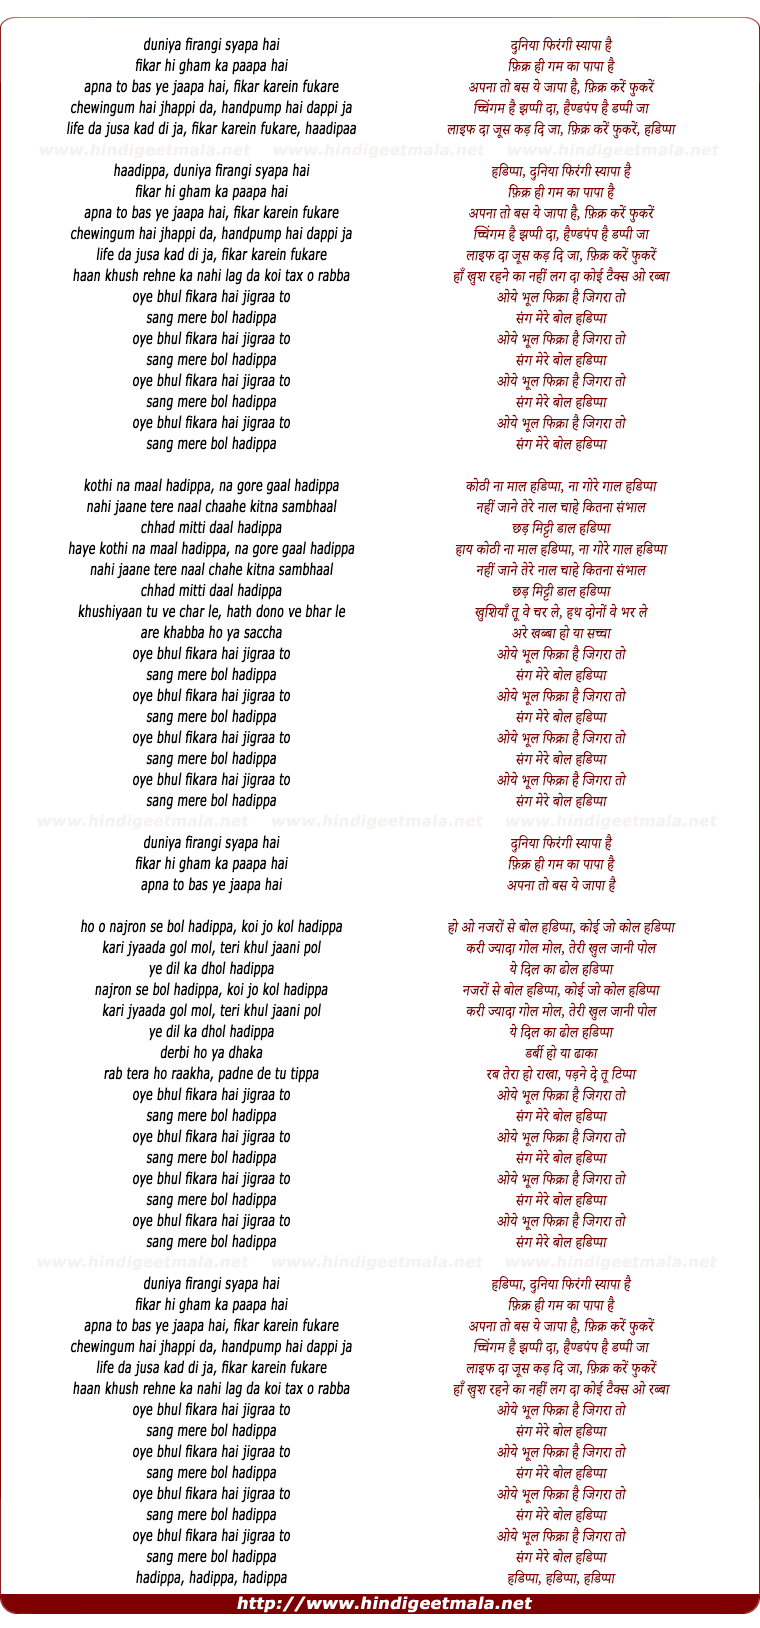 lyrics of song Hadippa